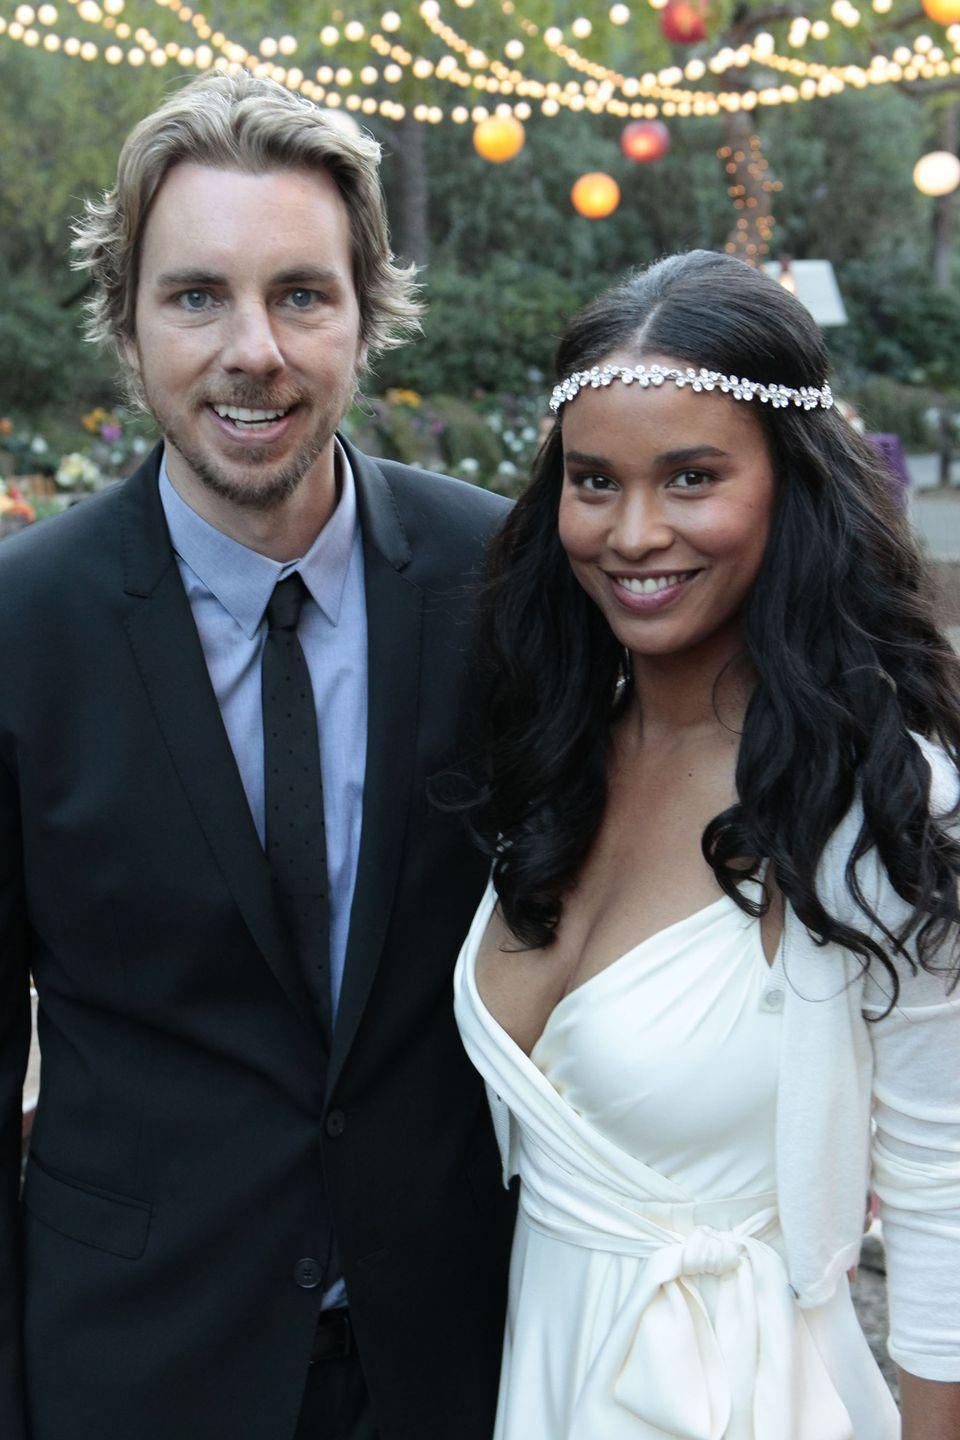 <p>Jasmine married Crosby in the season 3 finale of <em>Parenthood </em>in a pretty outside ceremony complete with twinkling string lights. The bride wore a floral headband over her loose waves and chose a white wrap dress for the big day. </p>